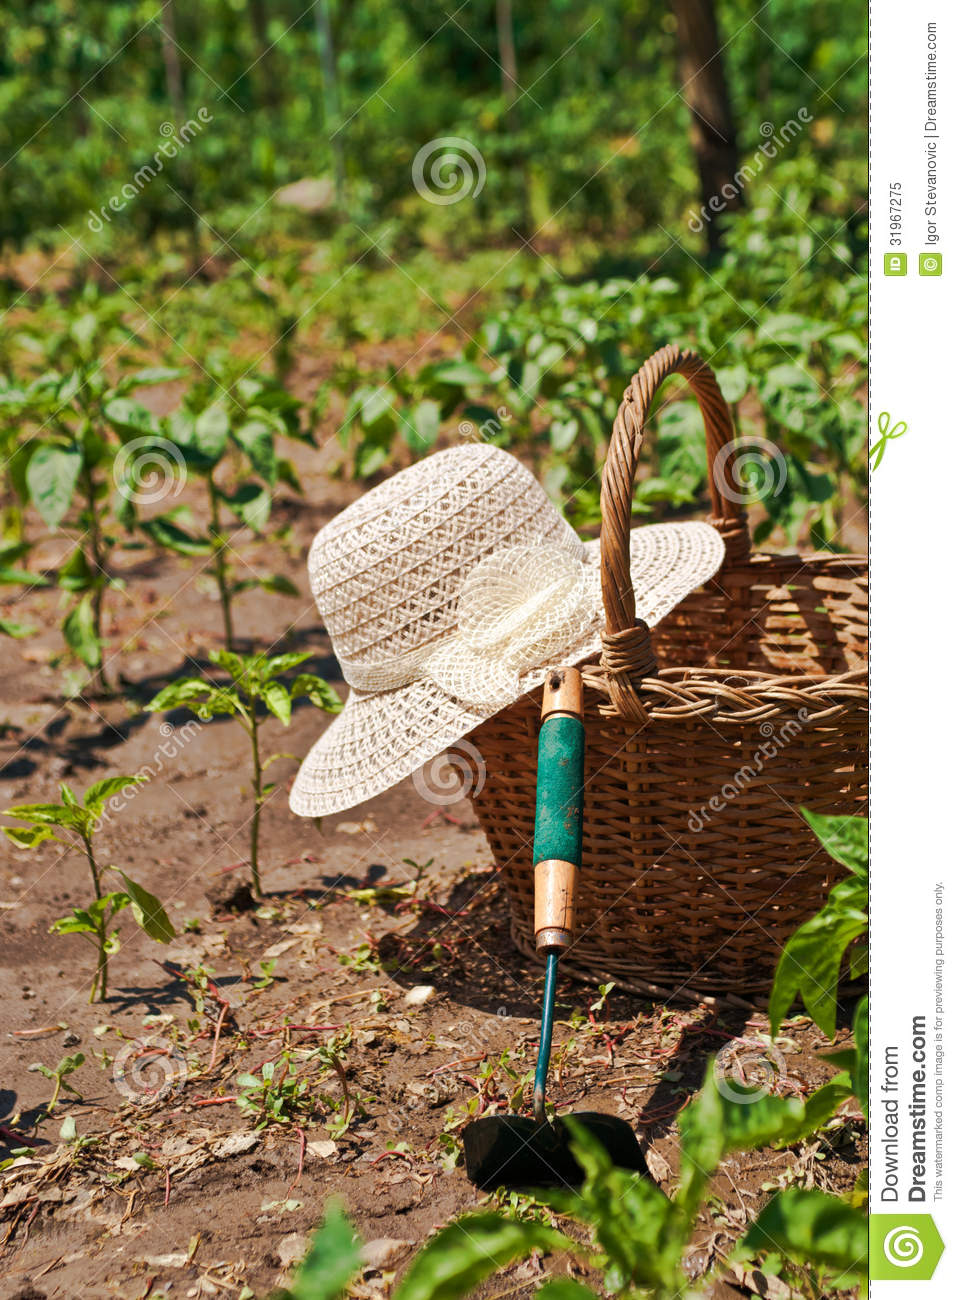 Garden Work Royalty Free Stock Photo Image 31967275